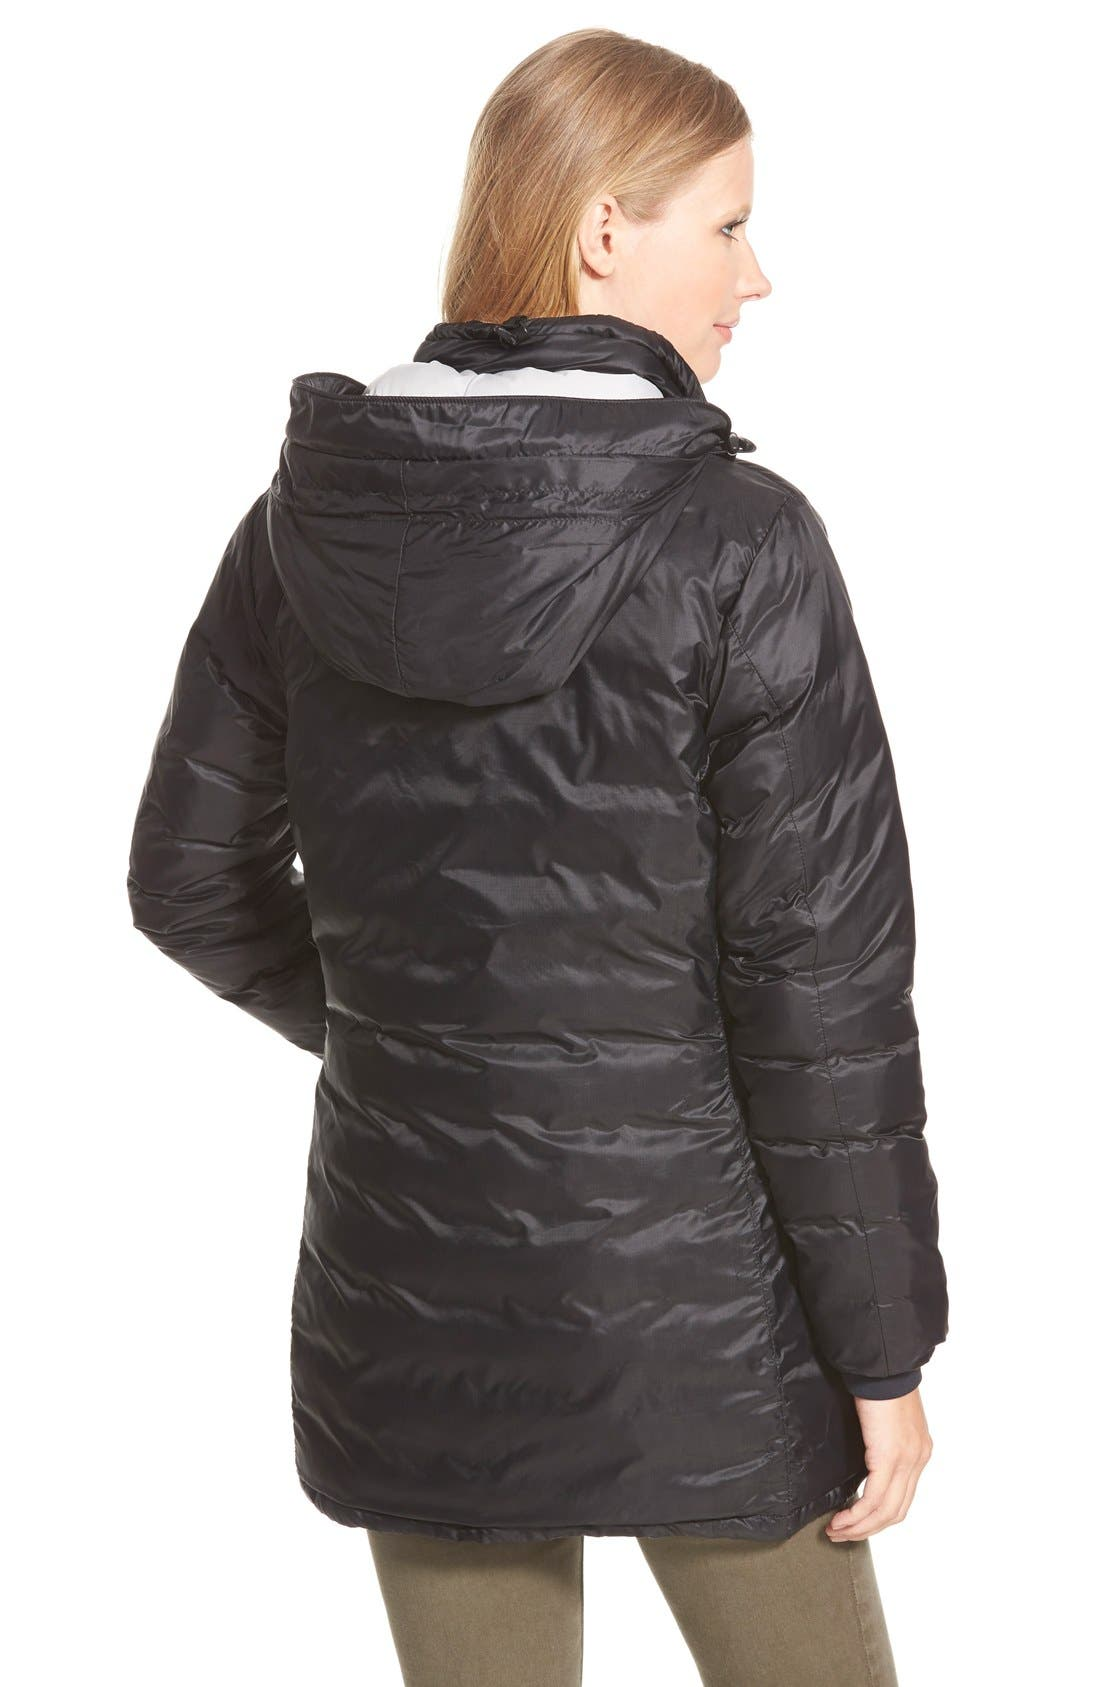 CANADA GOOSE, 'Camp' Slim Fit Hooded Packable Down Jacket, Alternate thumbnail 4, color, BLACK